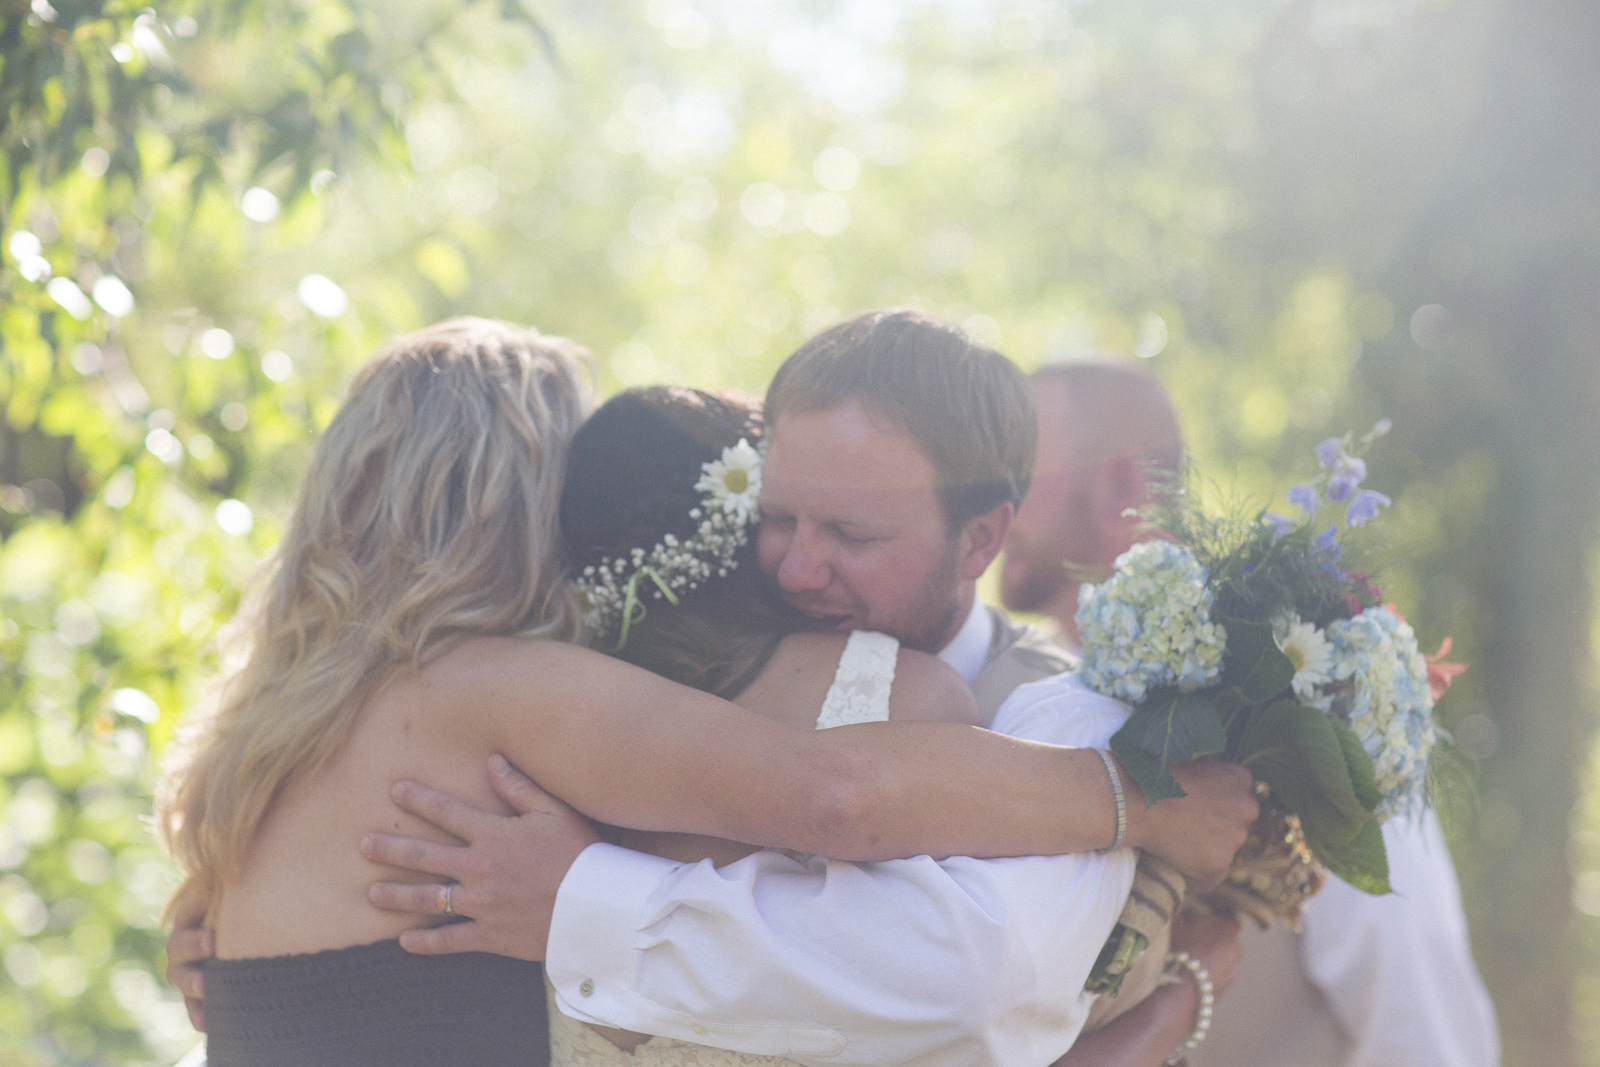 090-wedding-party-bus-fun-photography-ceremony